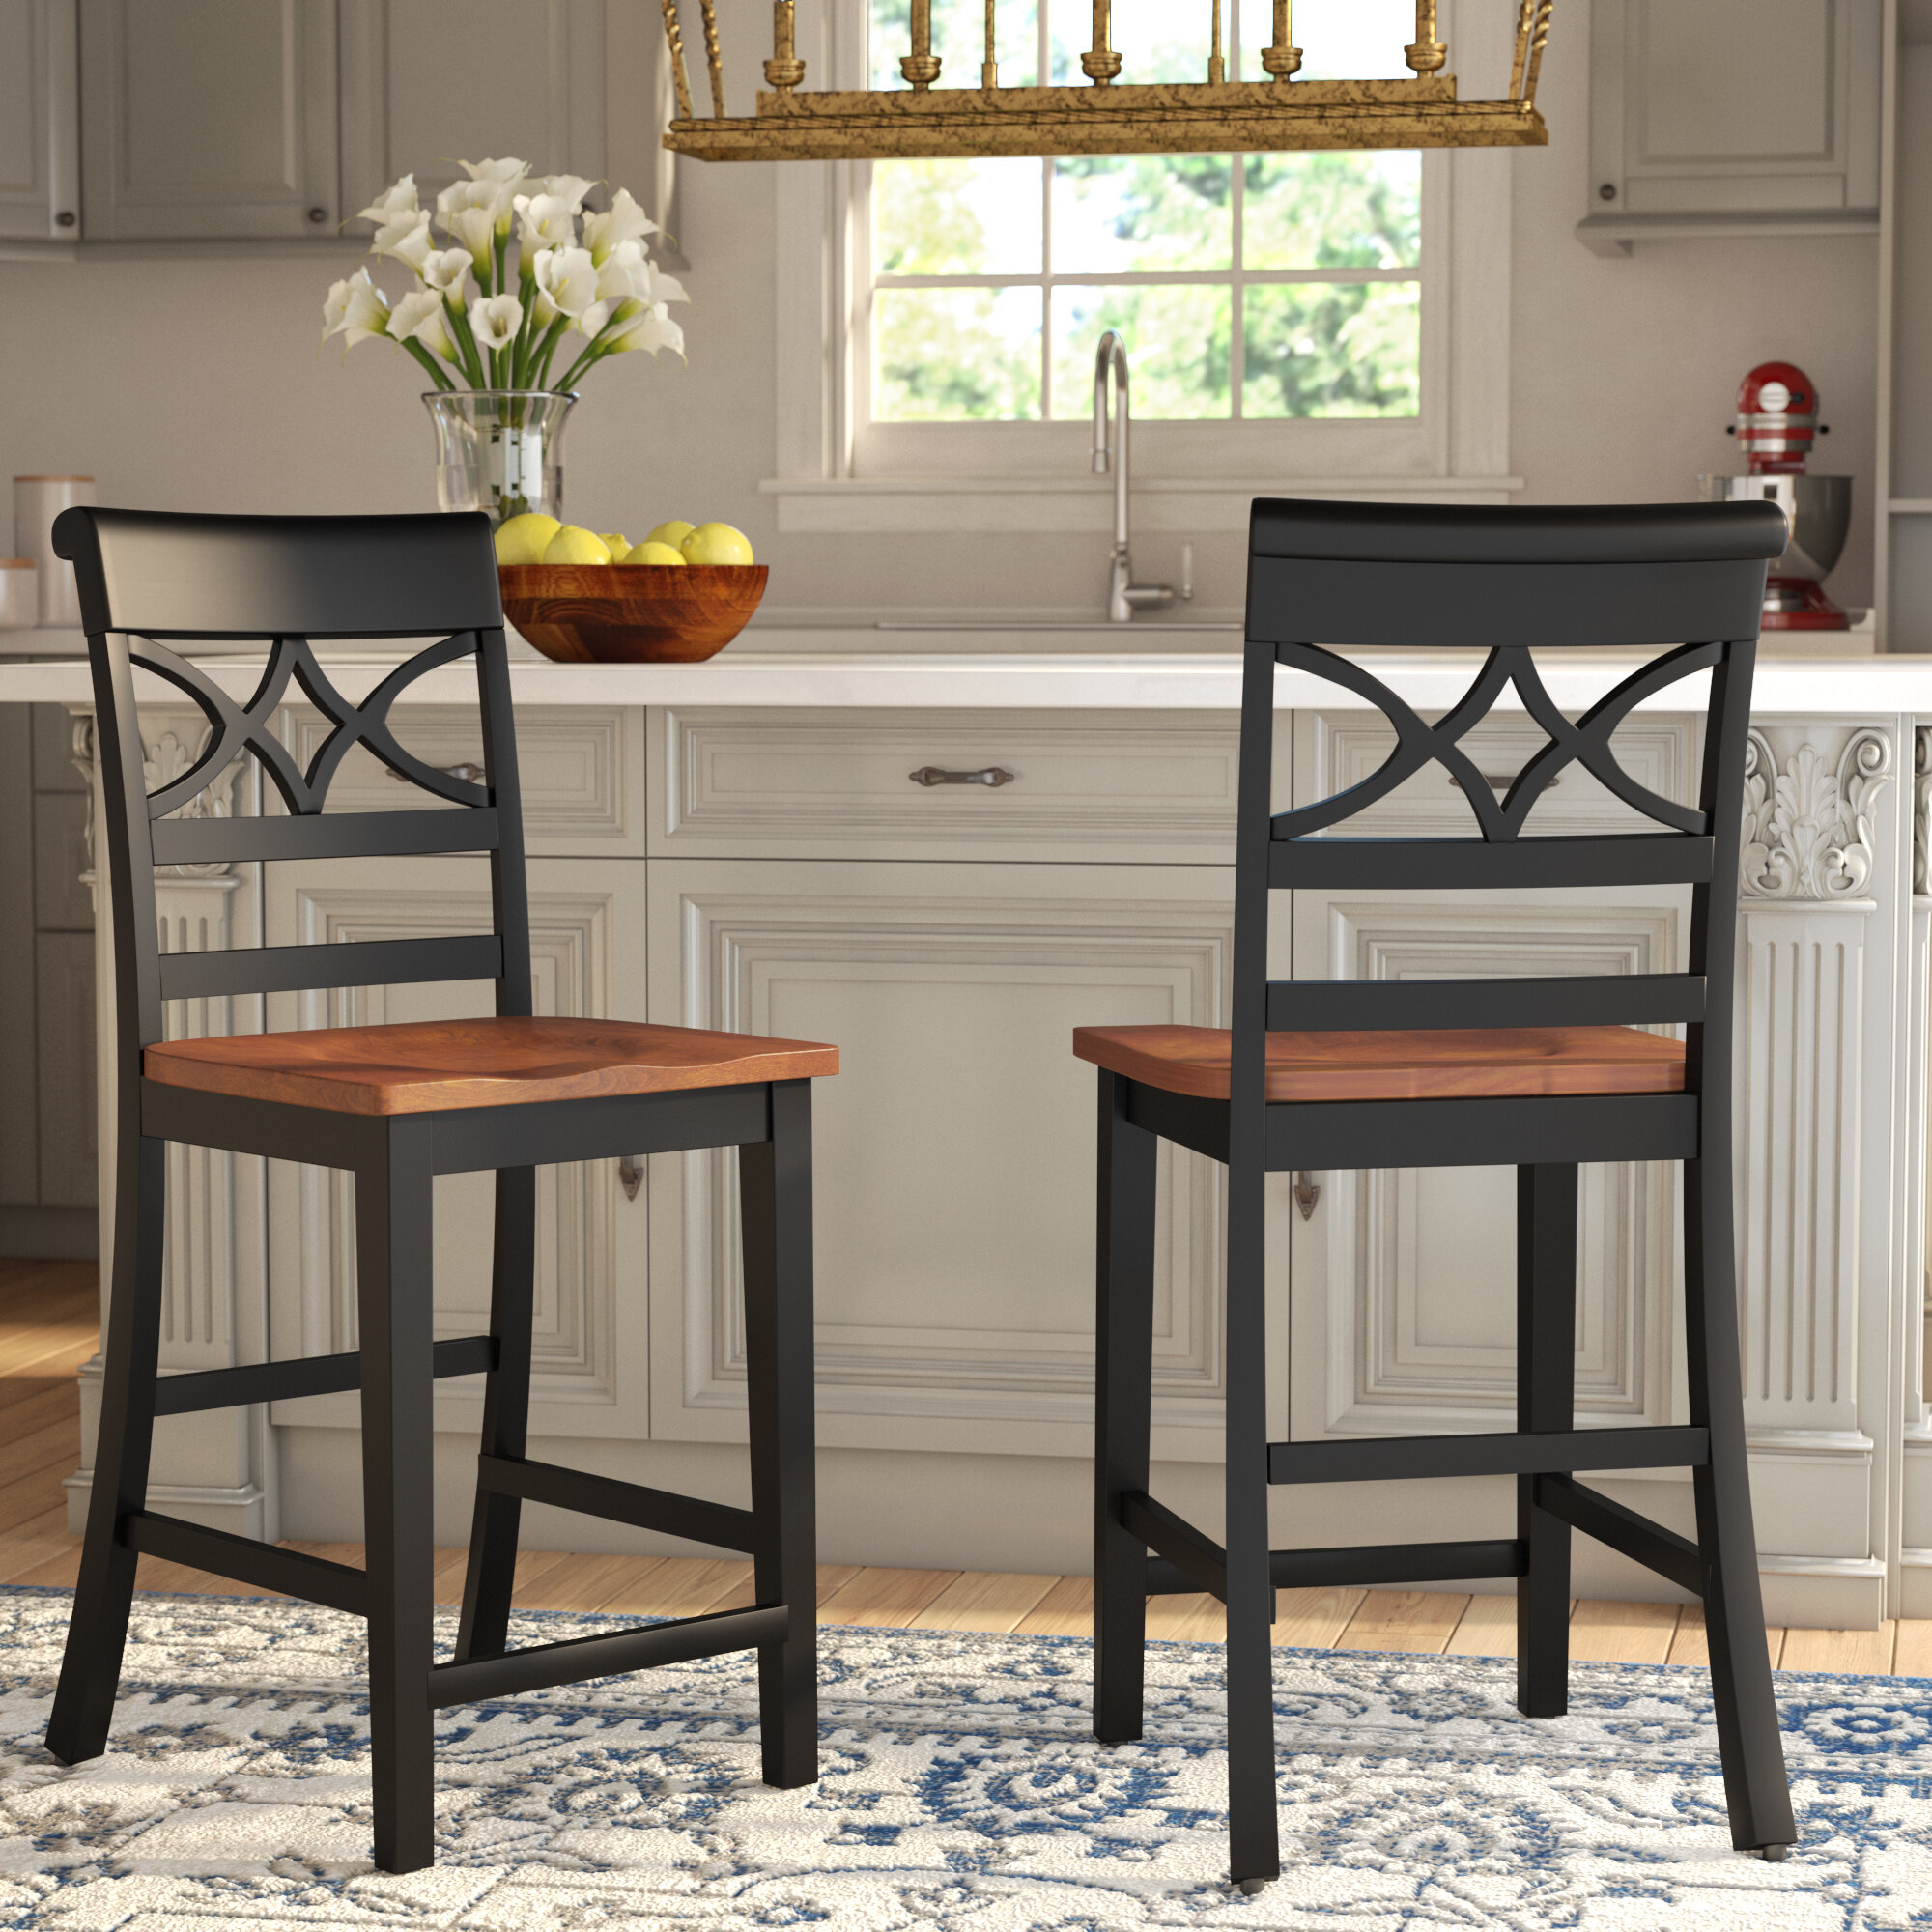 Kitchen Island All Bar Stools Counter Stools You Ll Love In 2020